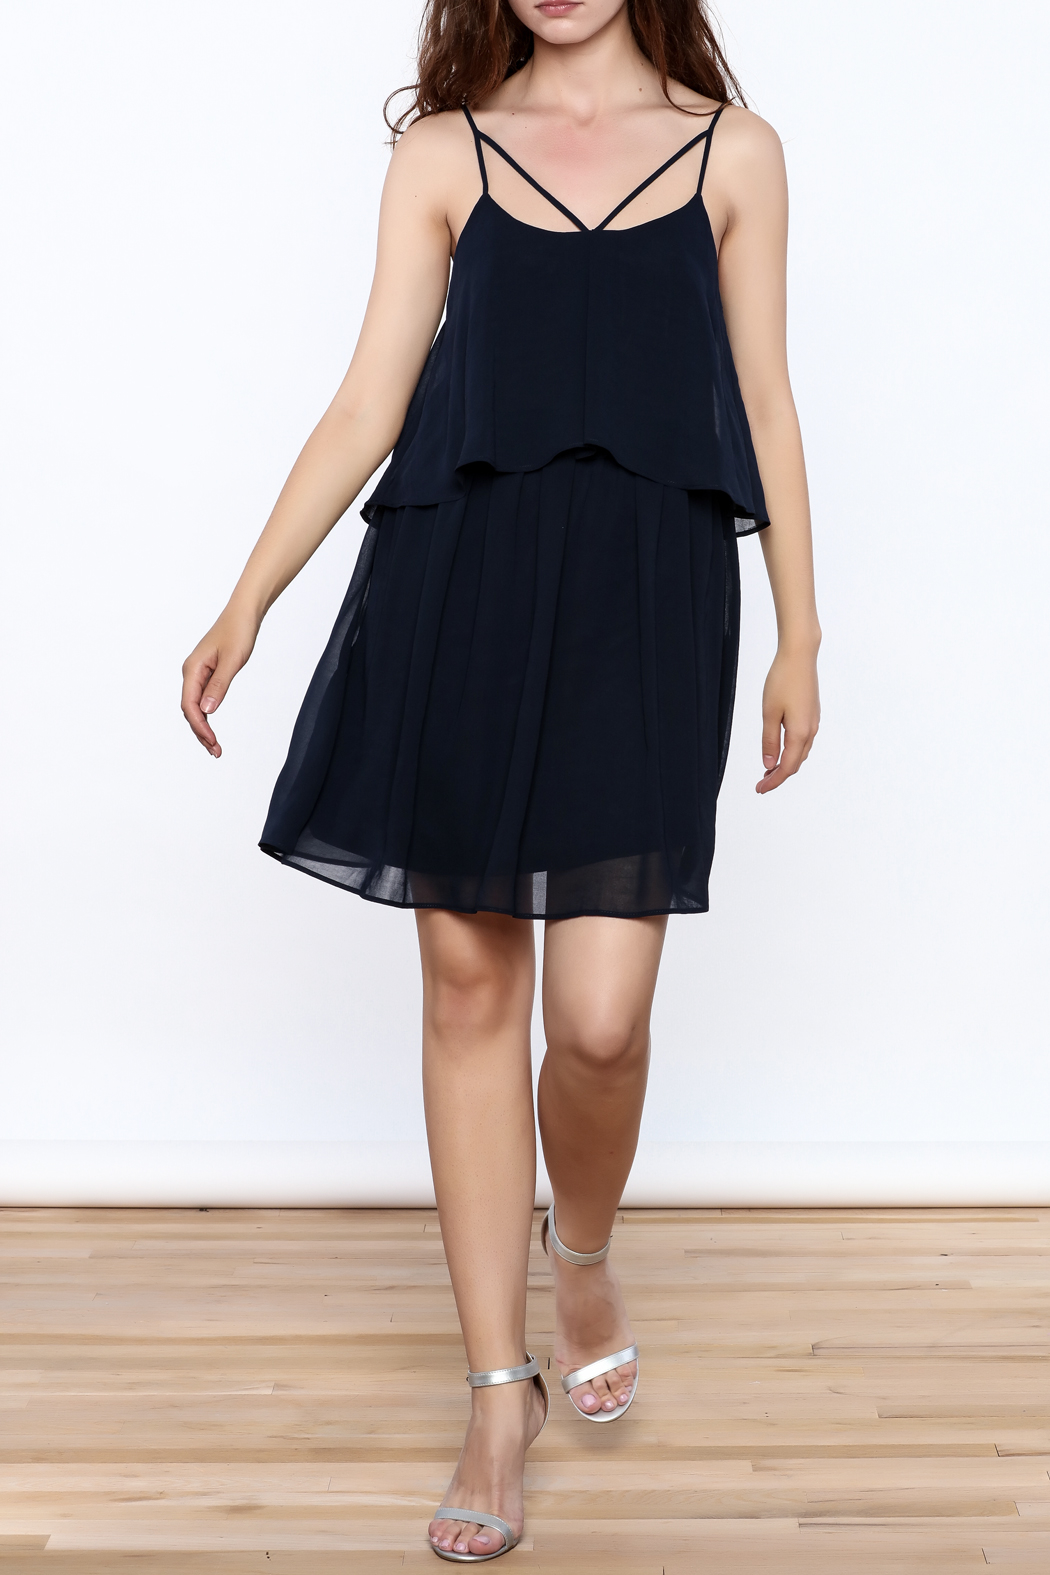 HYFVE Navy Flowy Dress - Front Full Image